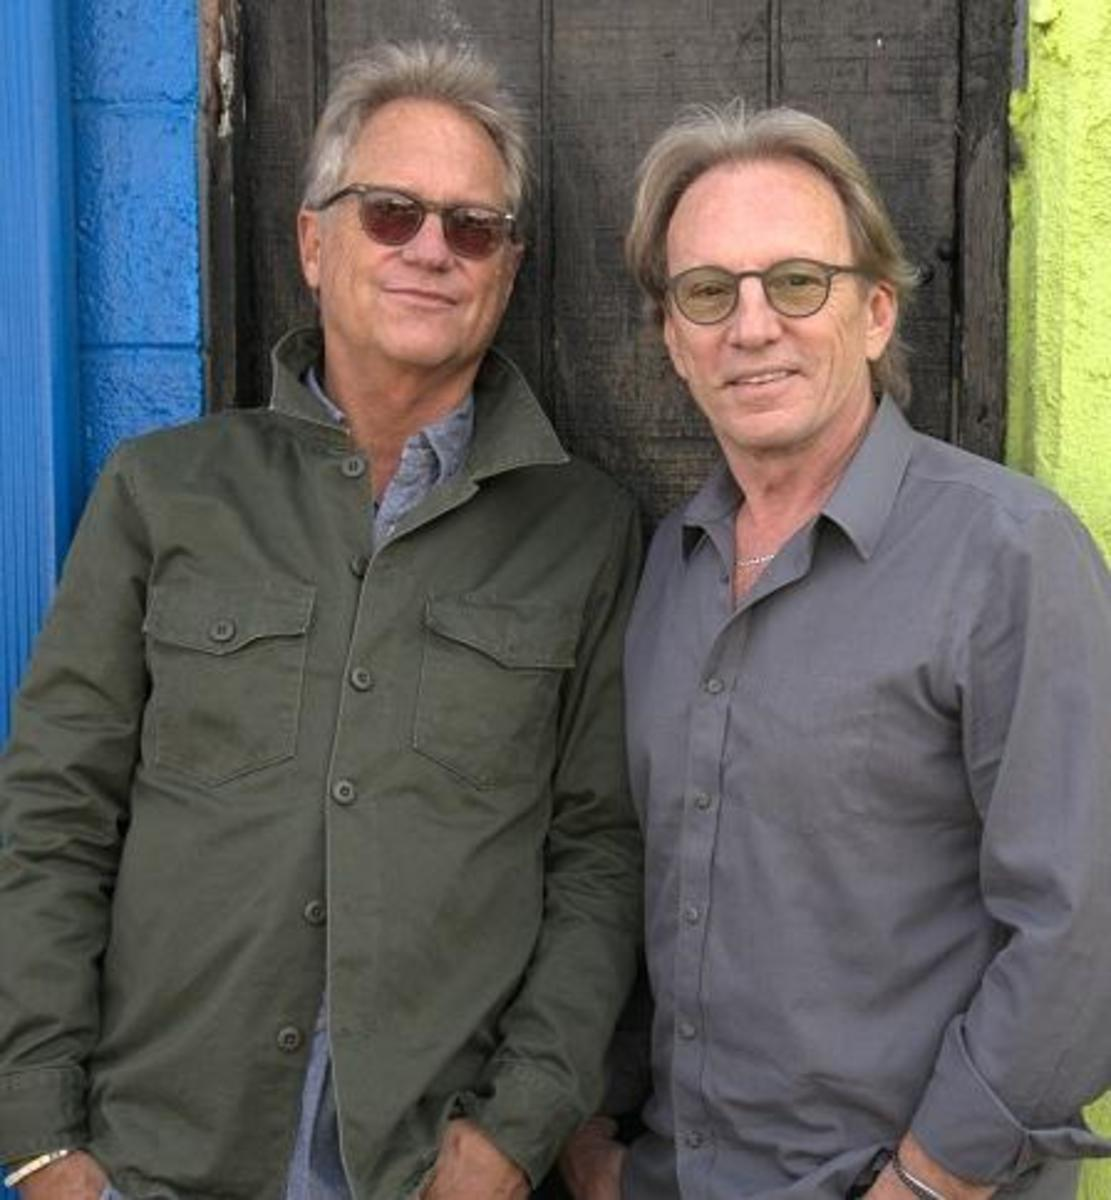 From left: Gerry Beckley and Dewey Bunnell